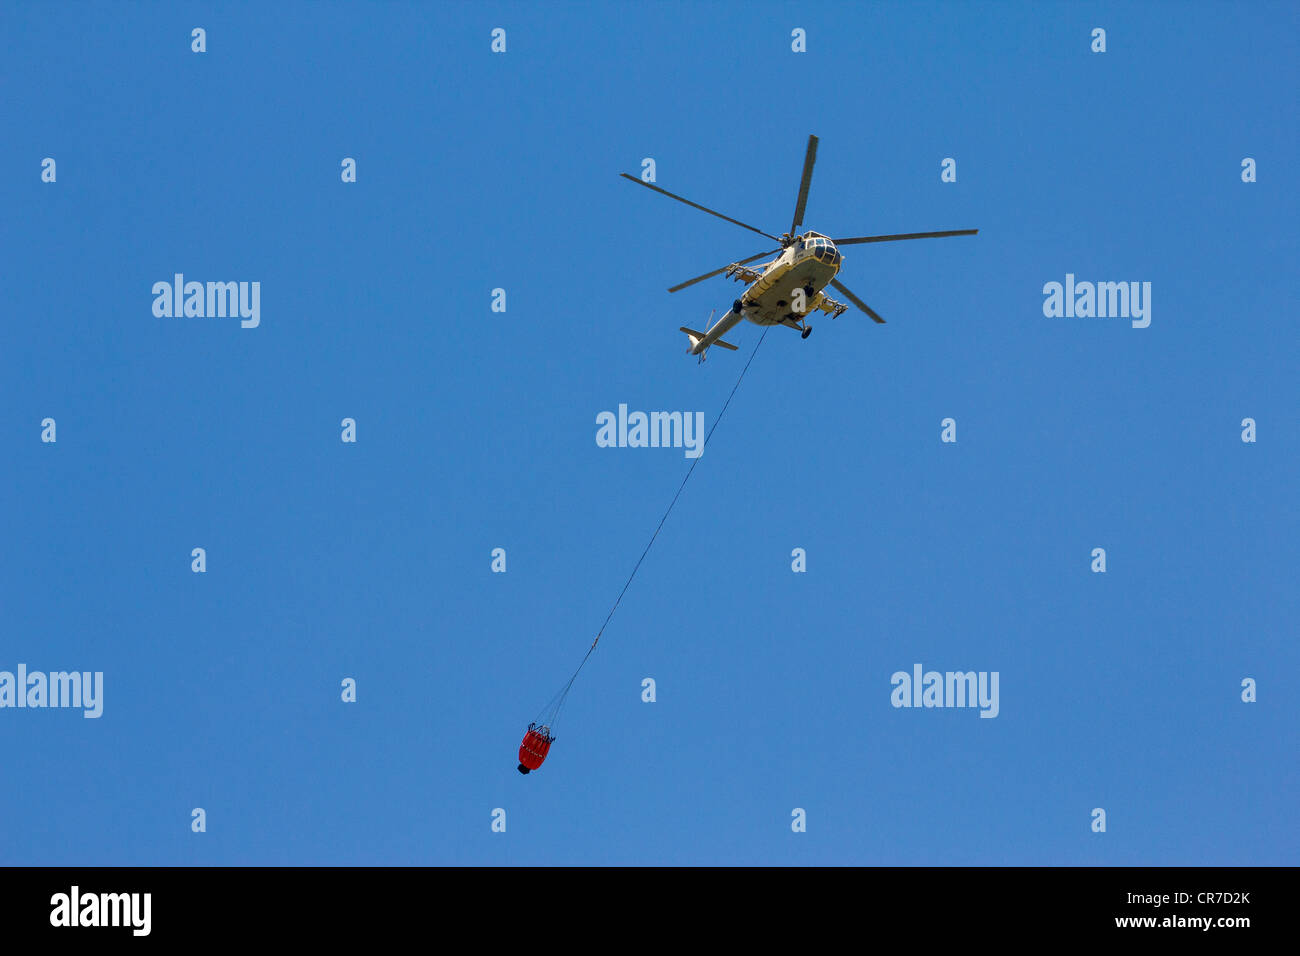 Egyptian military helicopter towing firefighting bucket - Stock Image